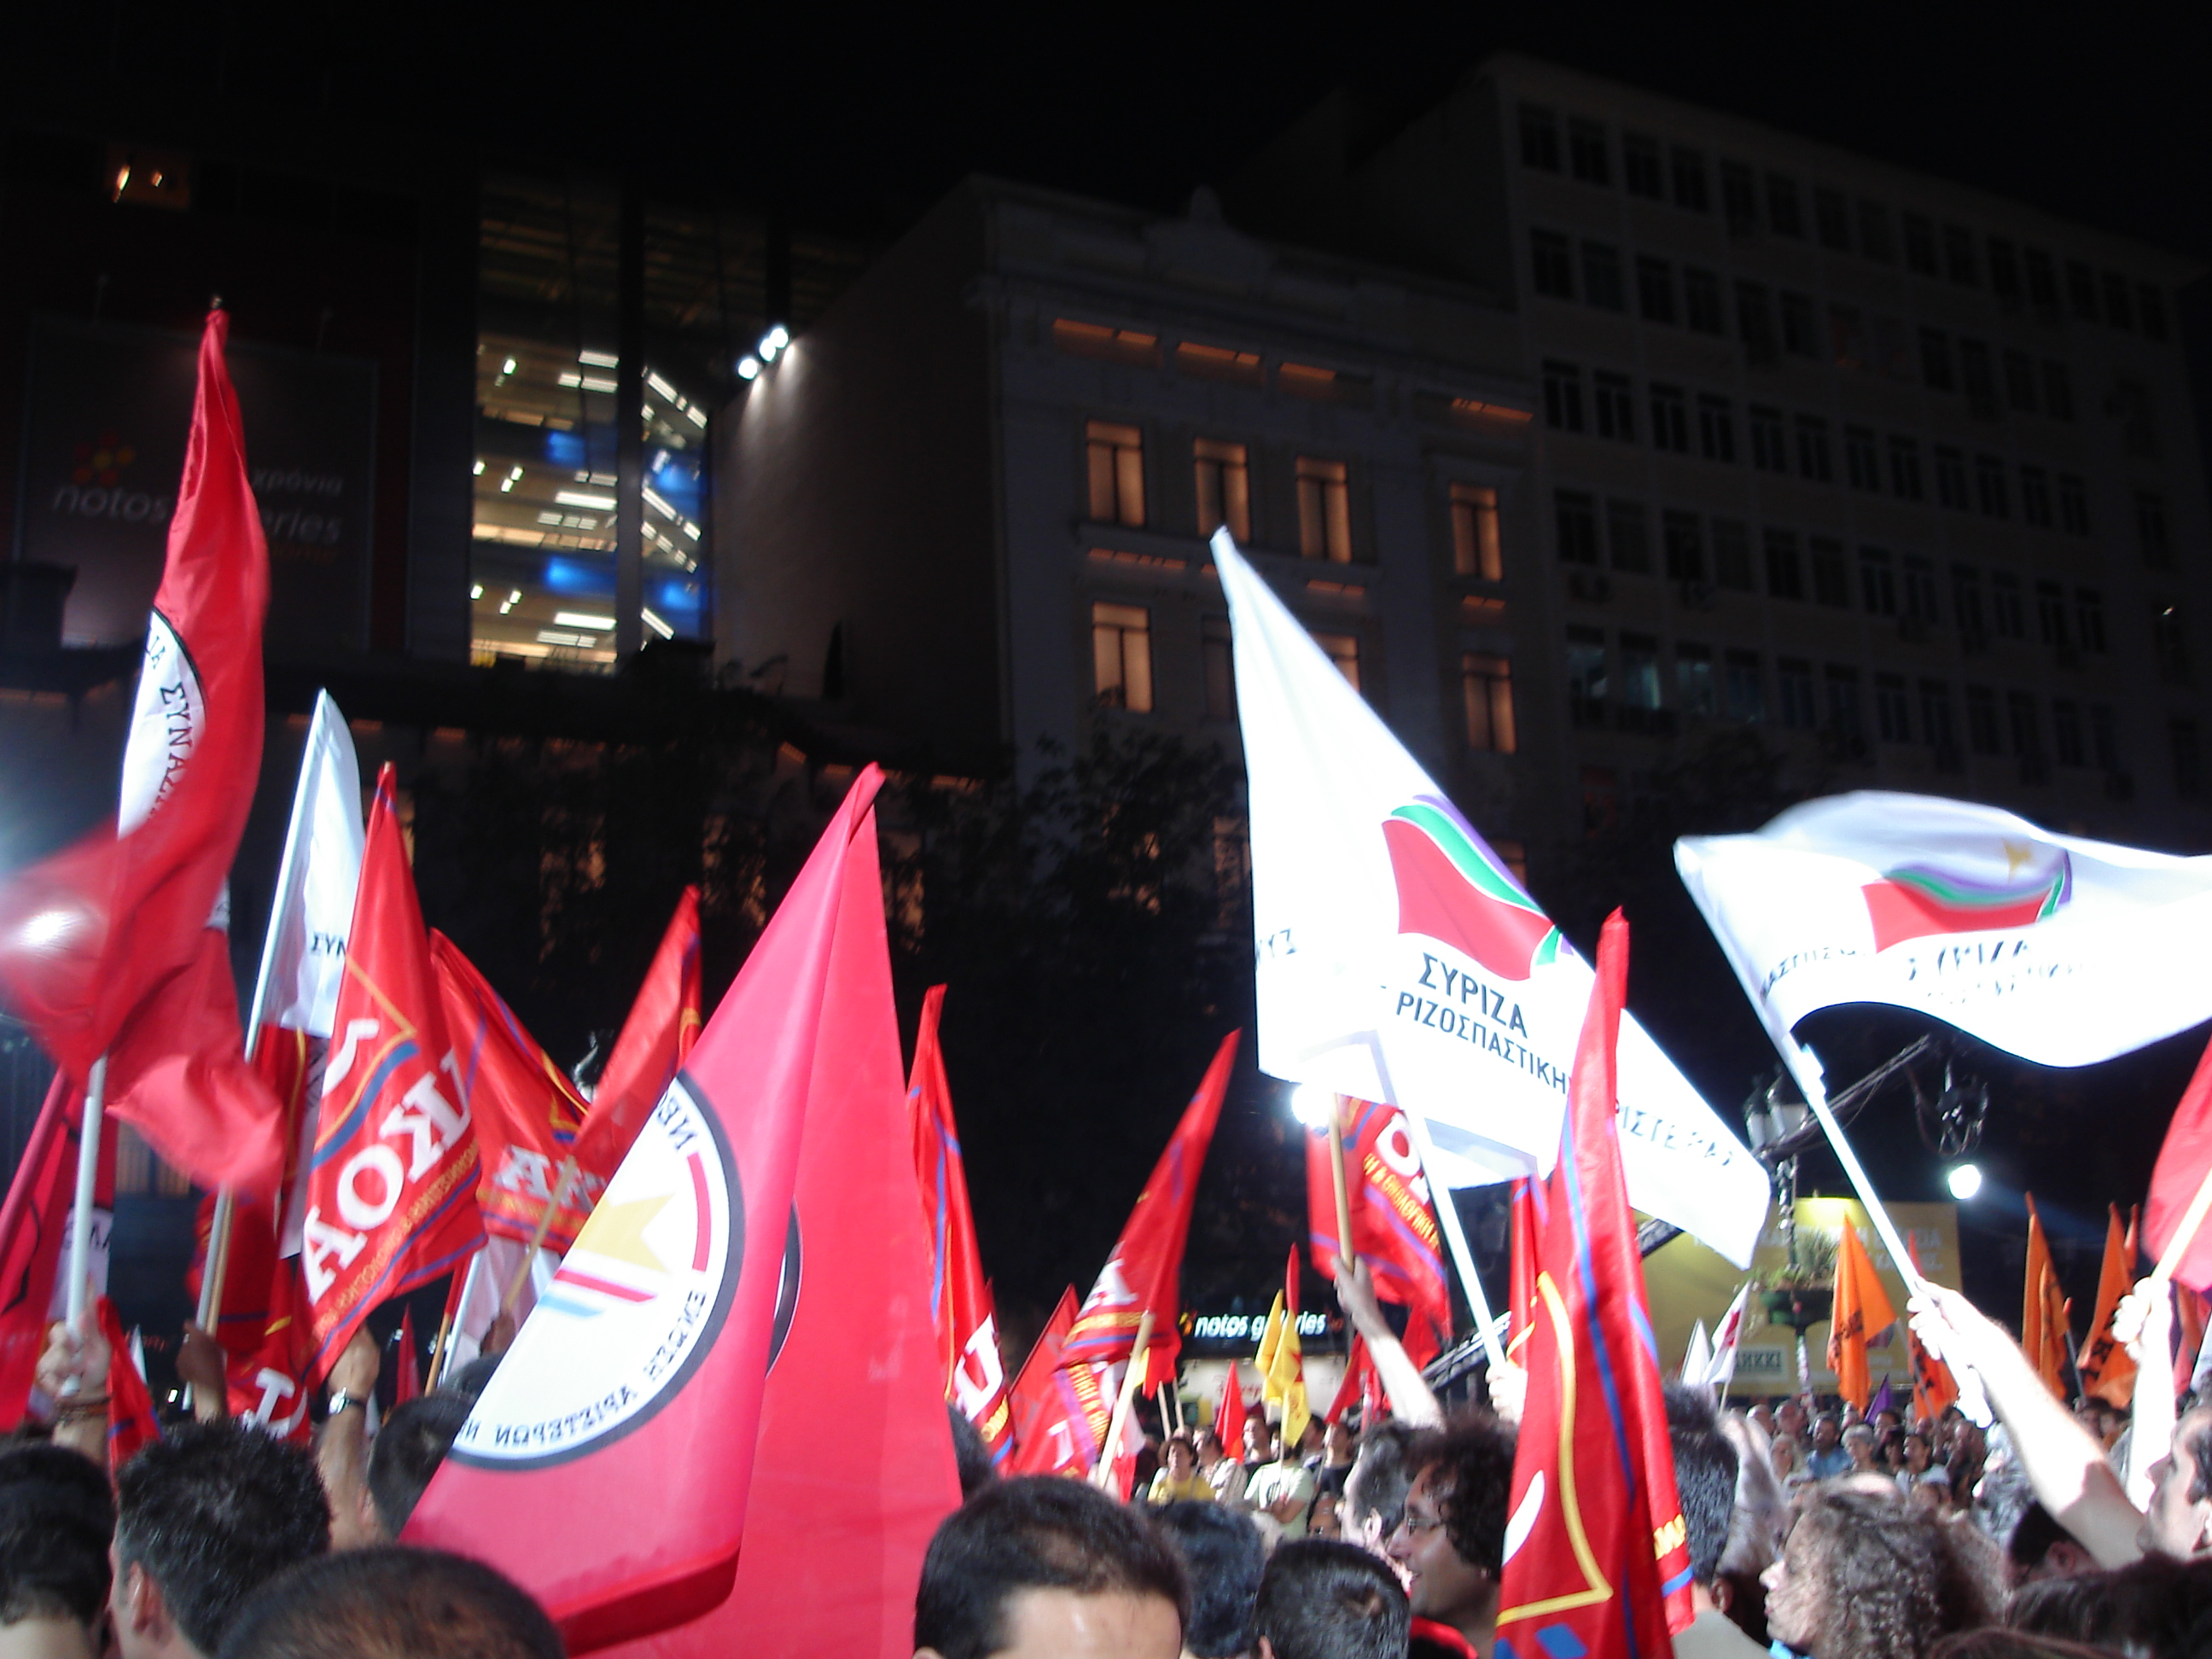 SYRIZA_flags_2007_thumb.jpg